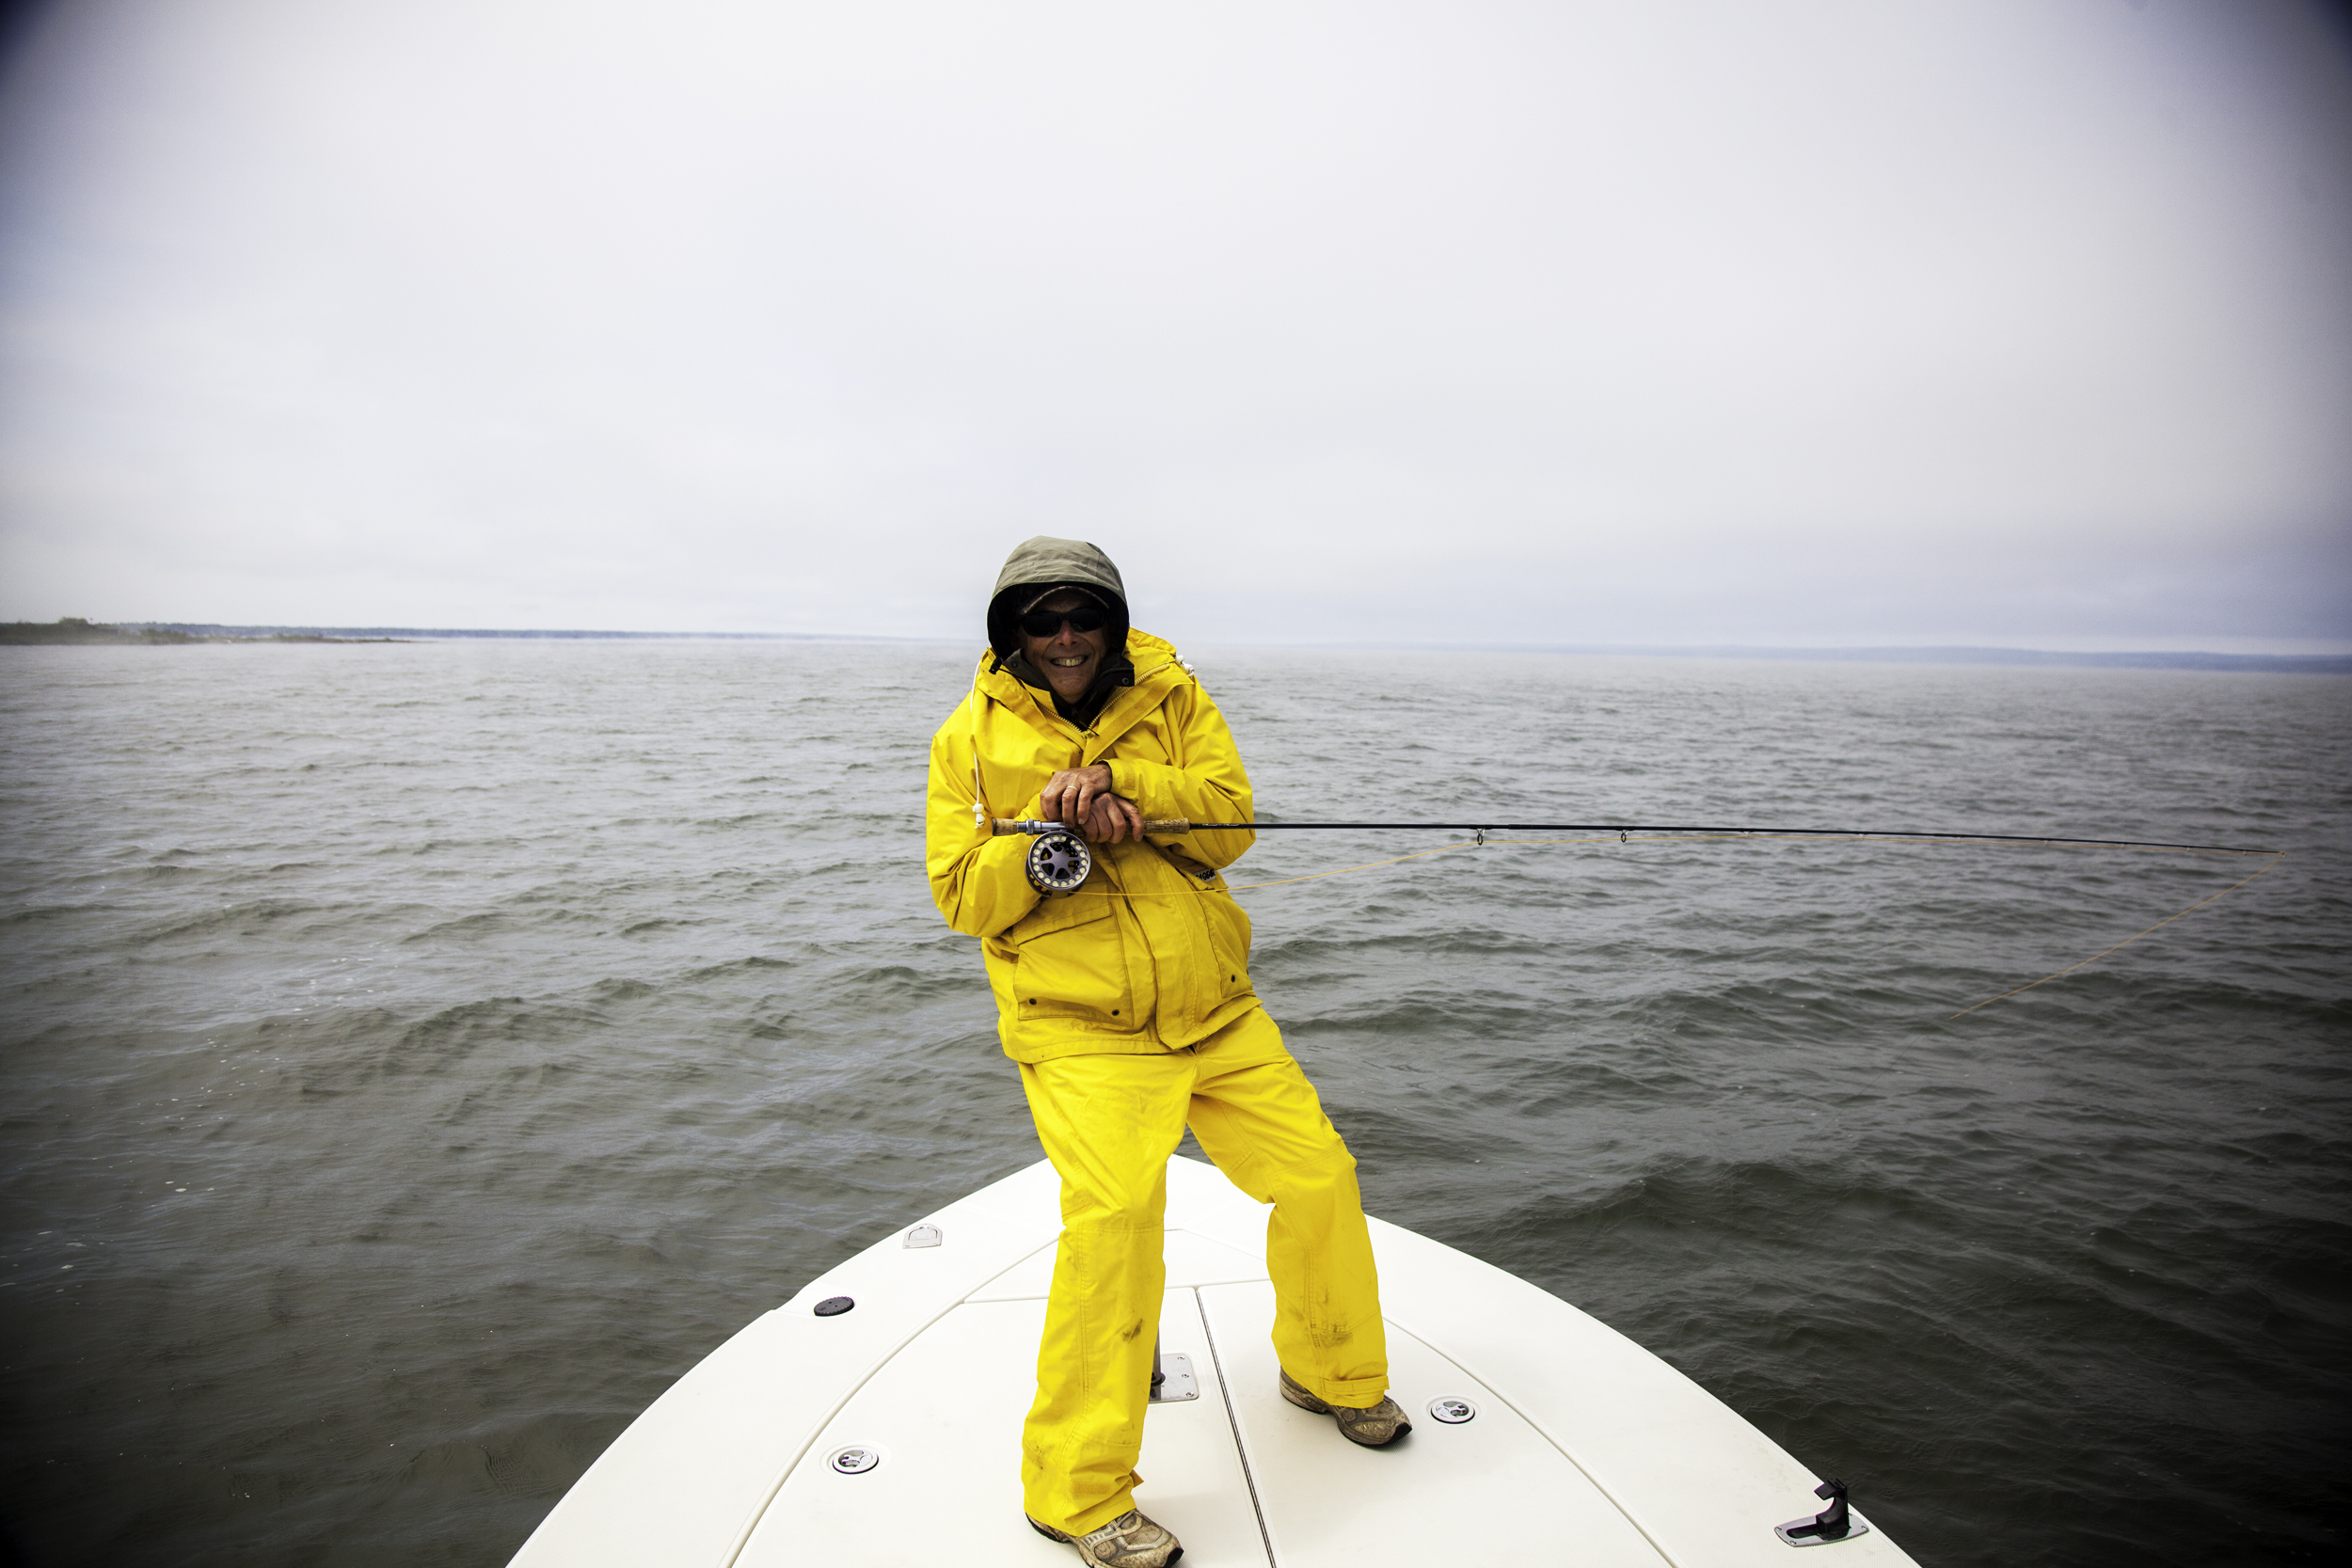 The weather on the big lake is always crazy. We were wearing shorts and t-shirts one day and Arctic survival suits the next day. You gotta love it!